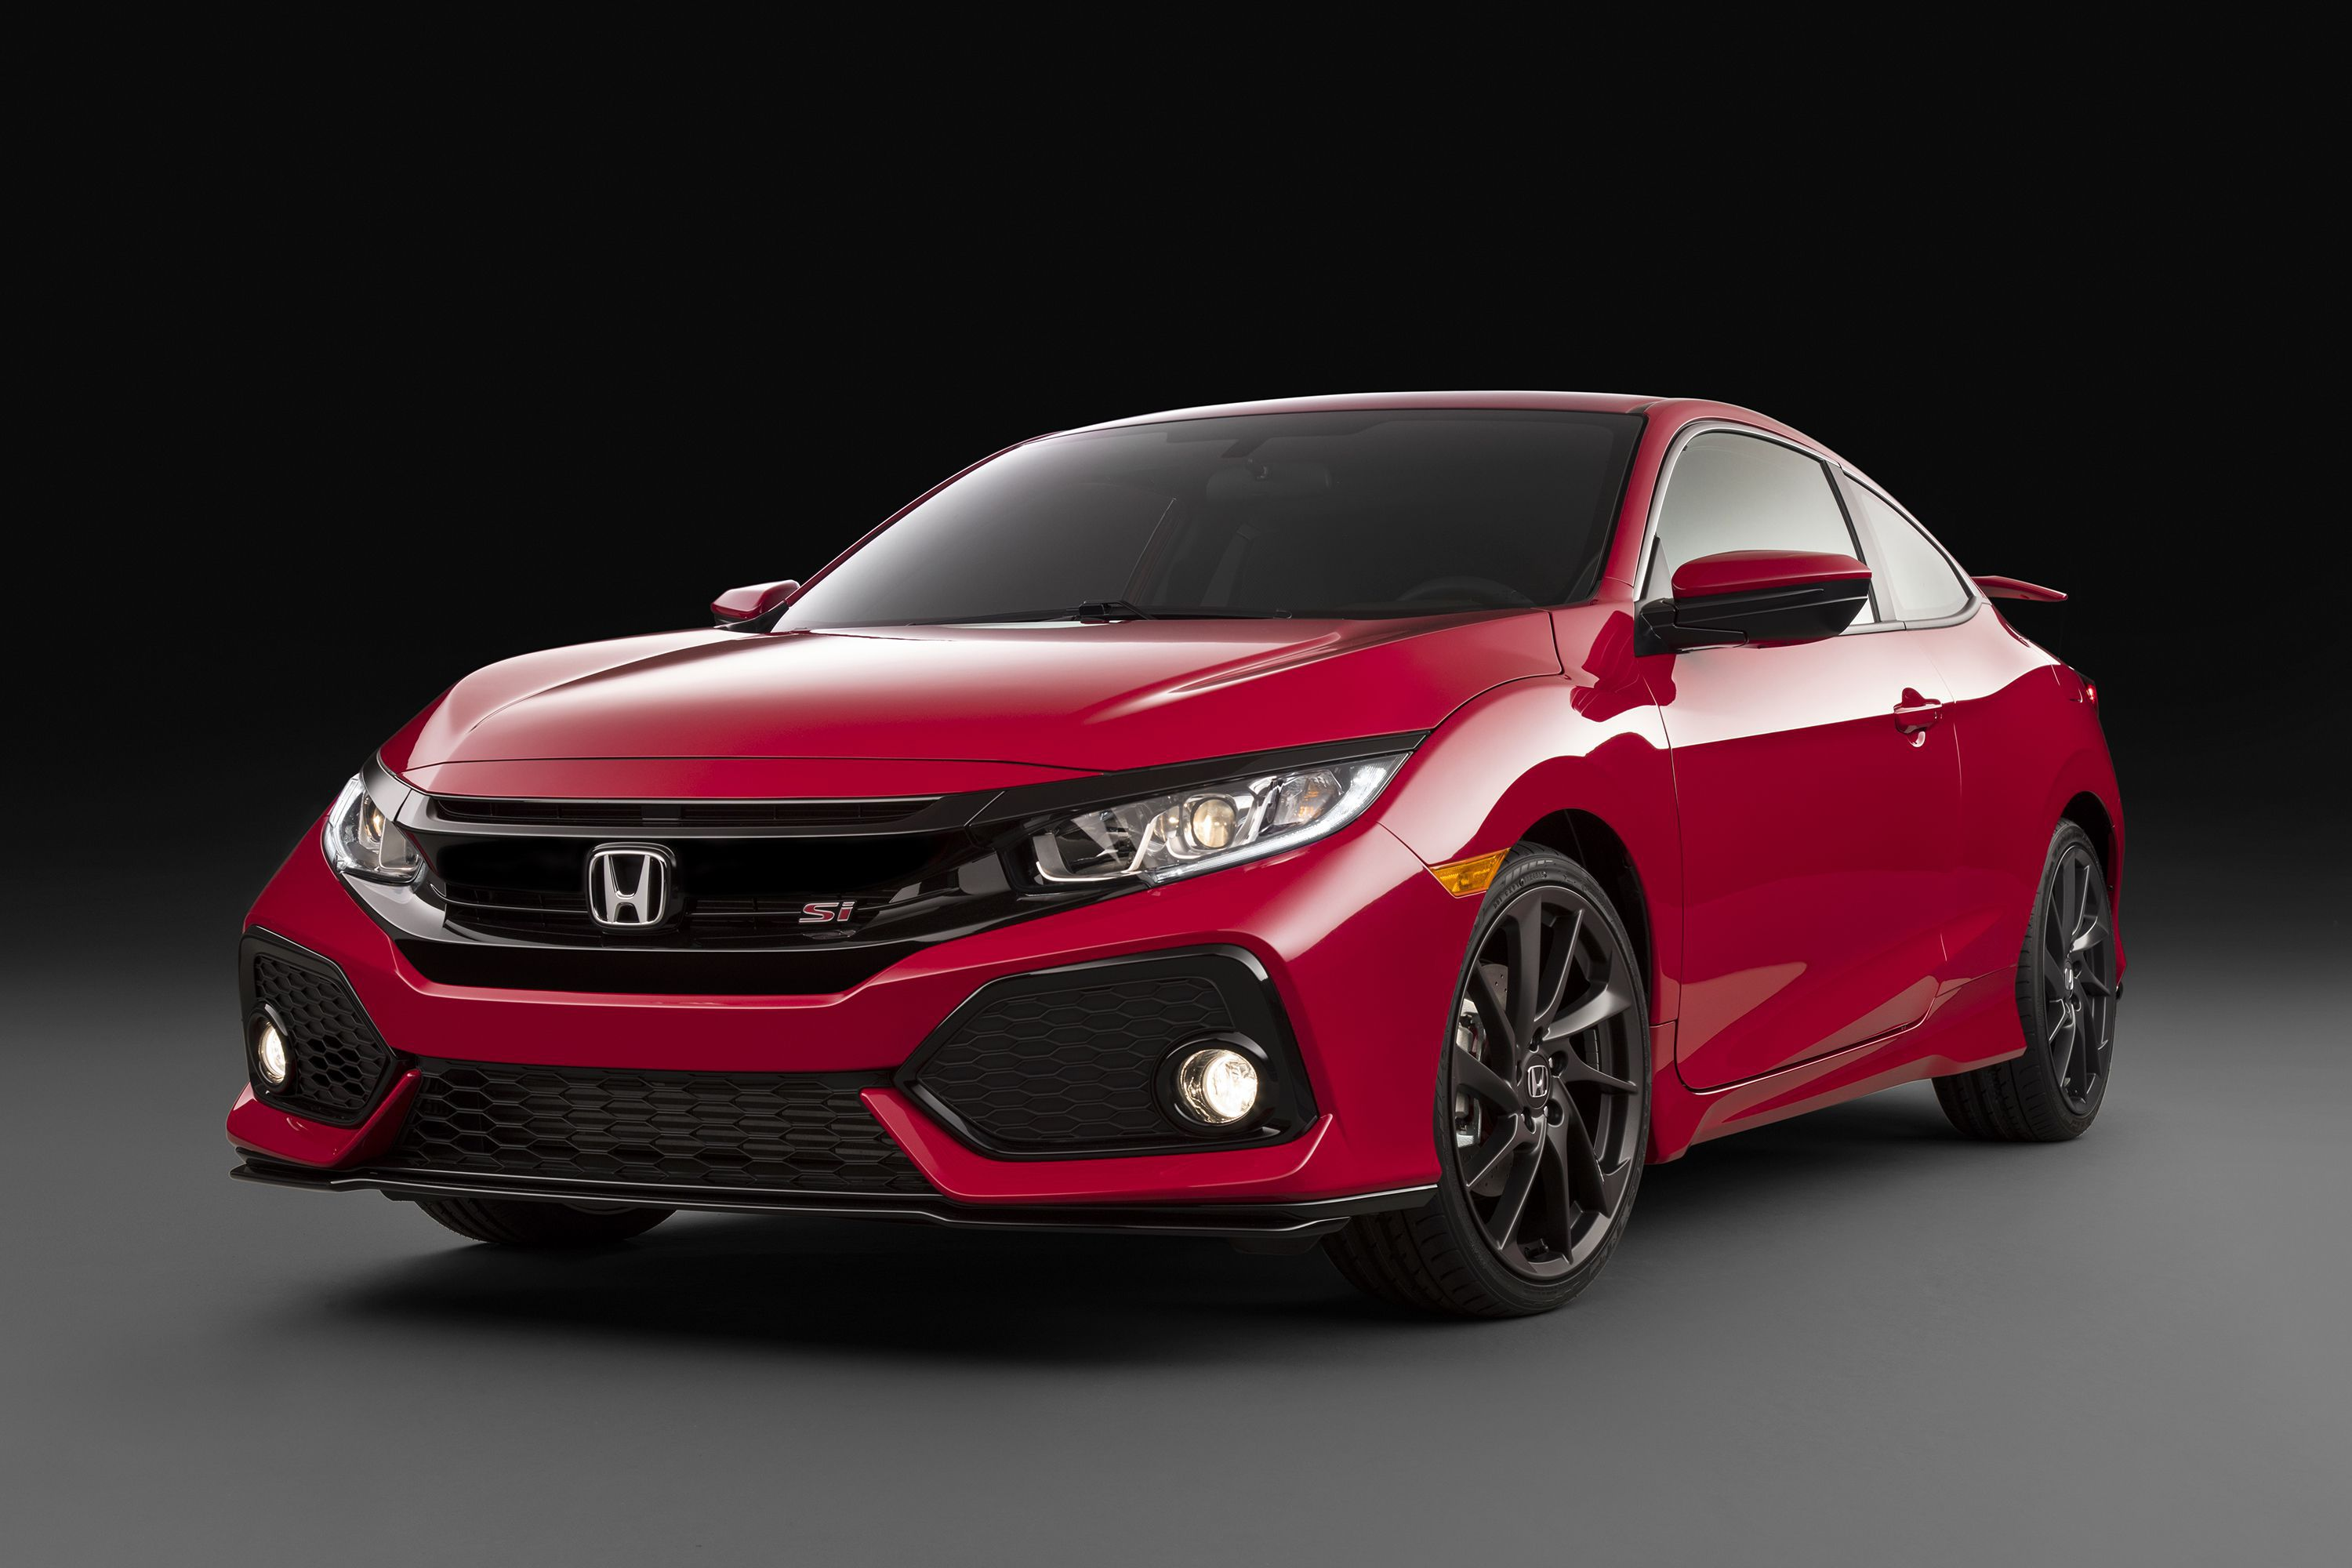 honda civic si 2017, hd cars, 4k wallpapers, images, backgrounds